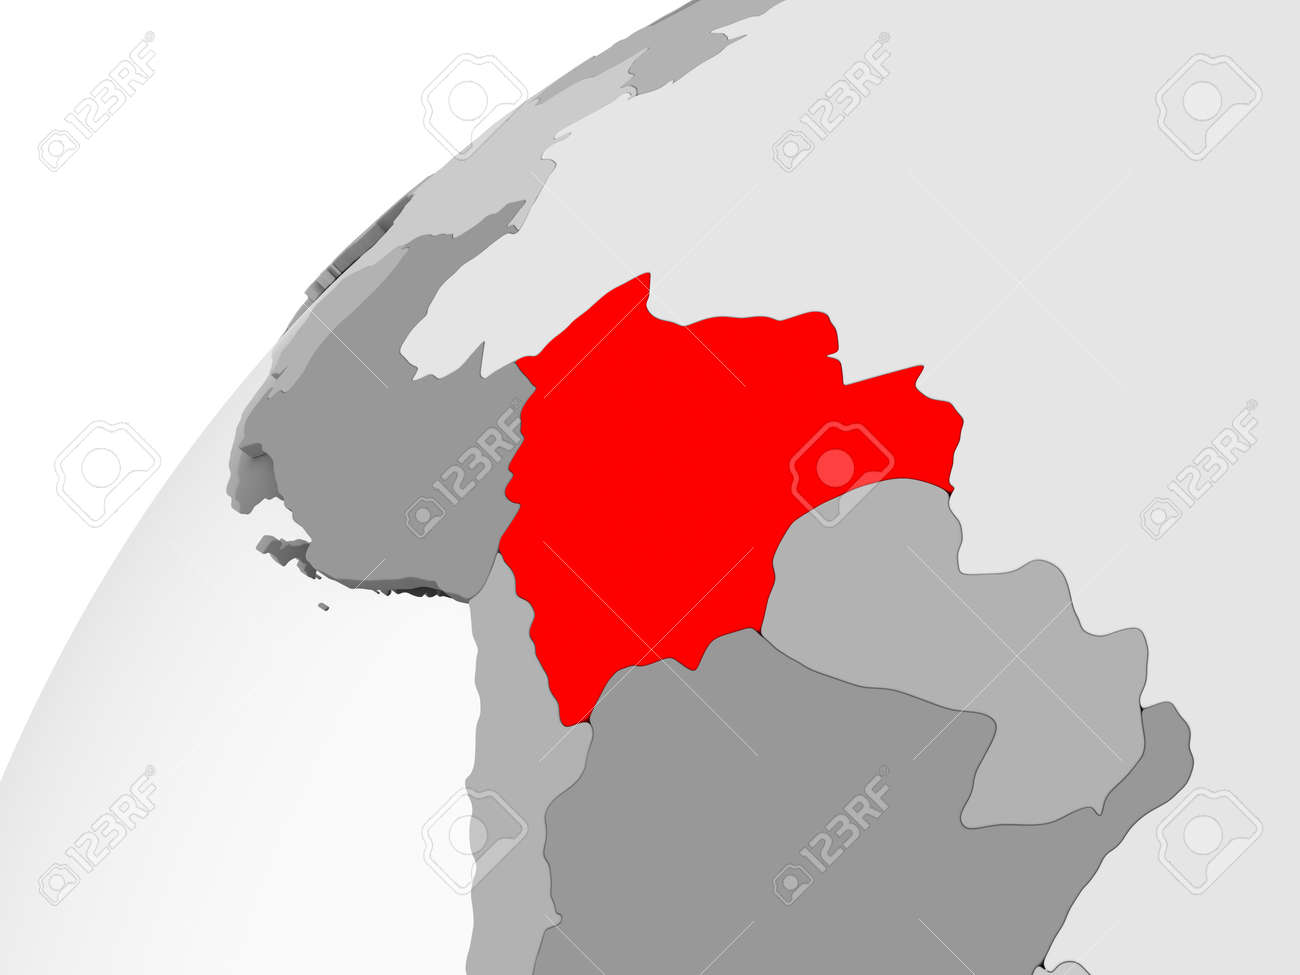 Map Of Bolivia In Red On Grey Political Globe With Transparent